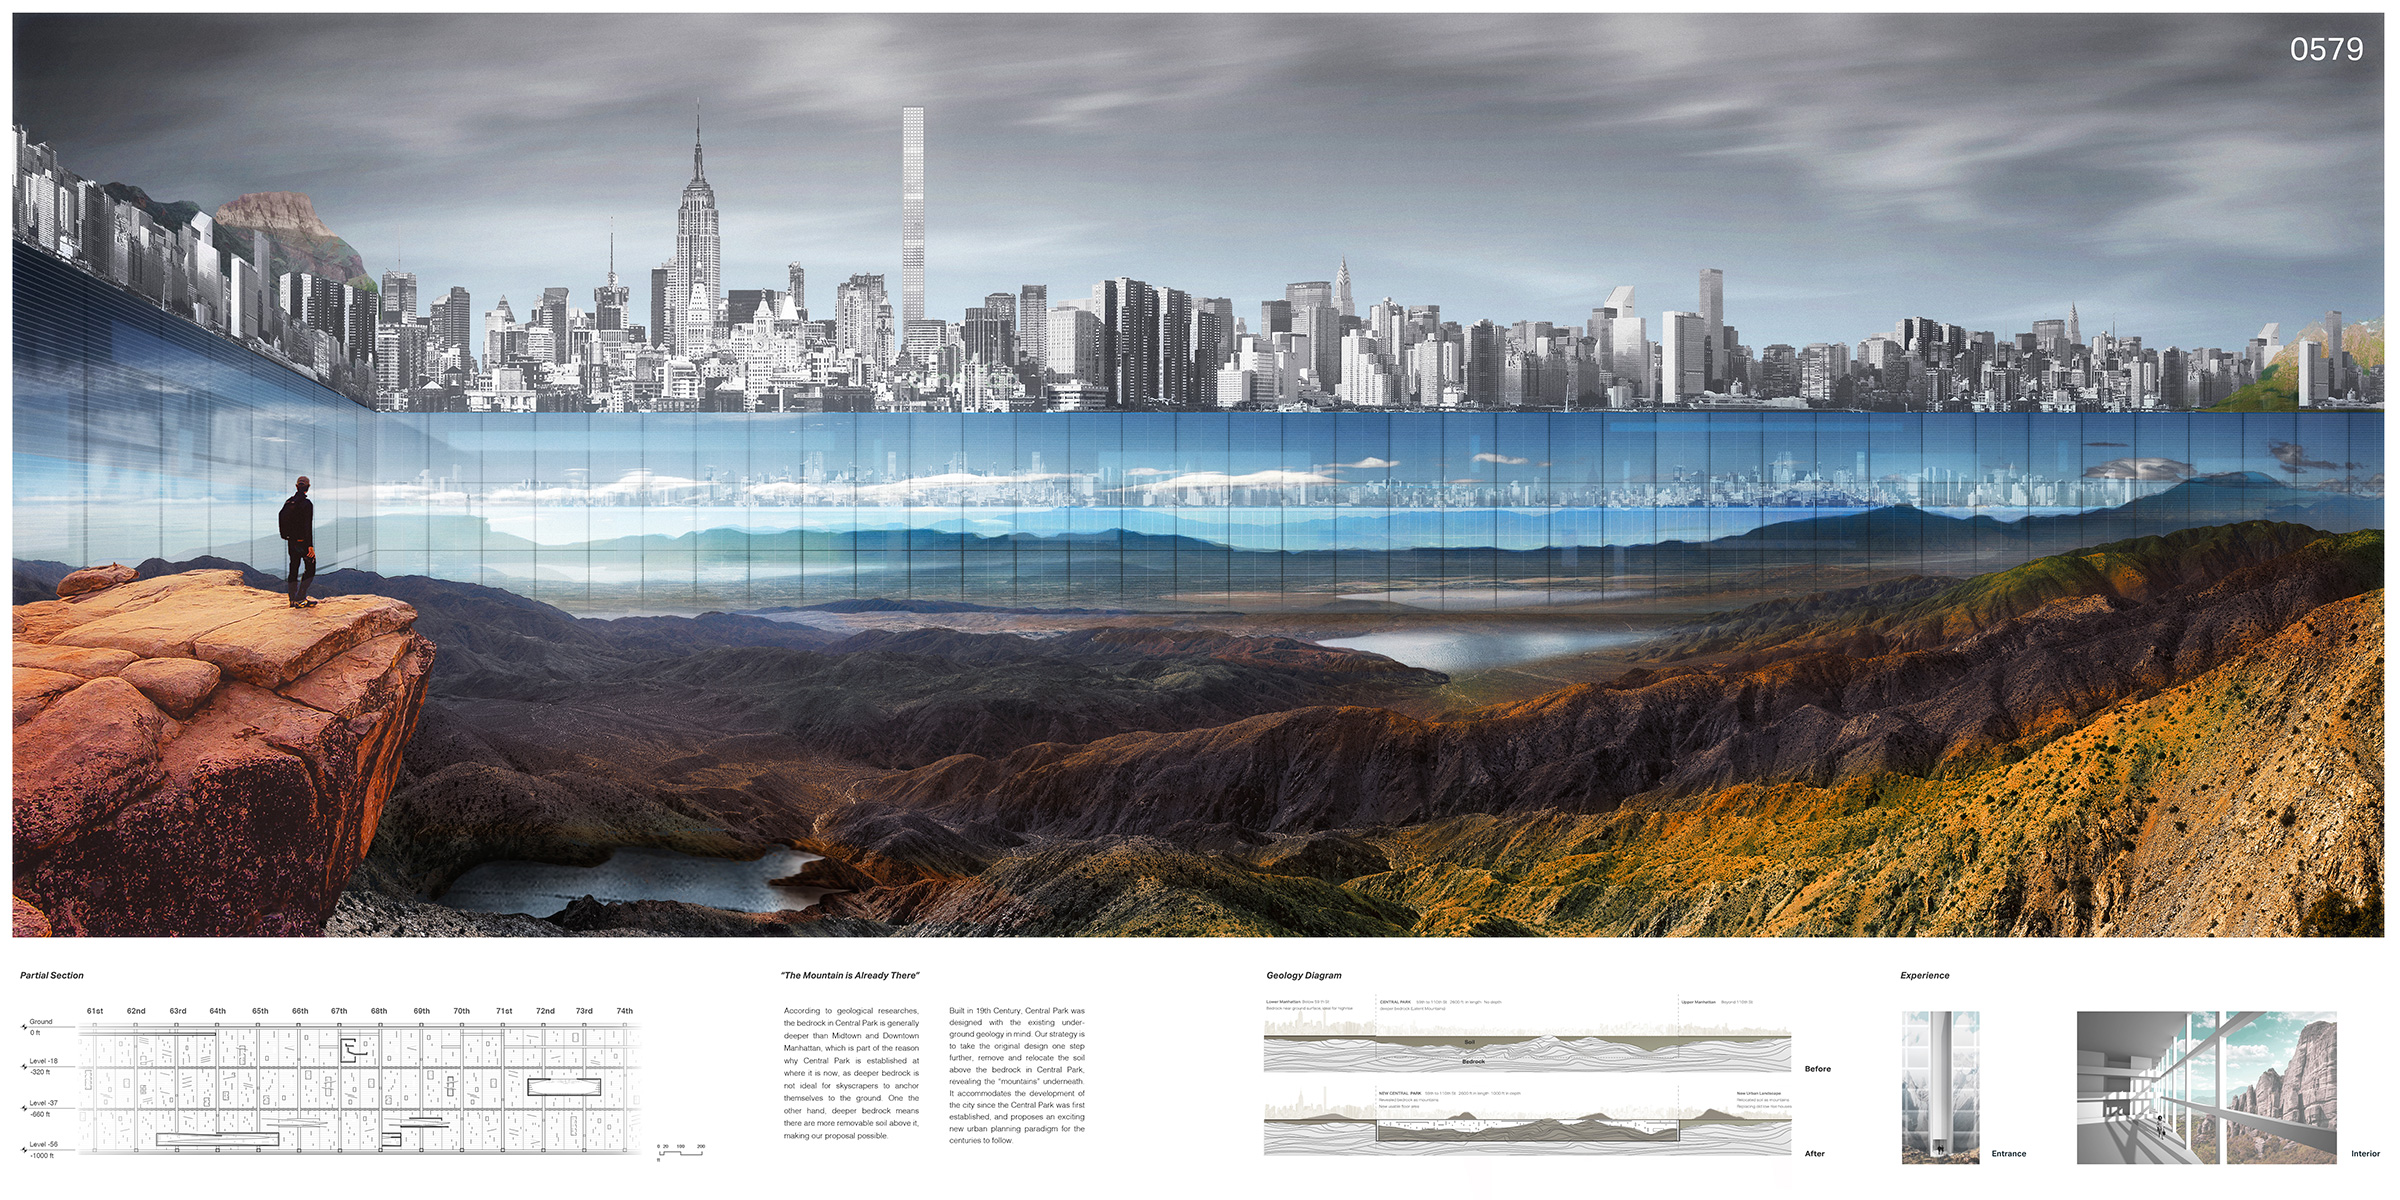 New York Horizon skyscraper, evolo competition winner 2016